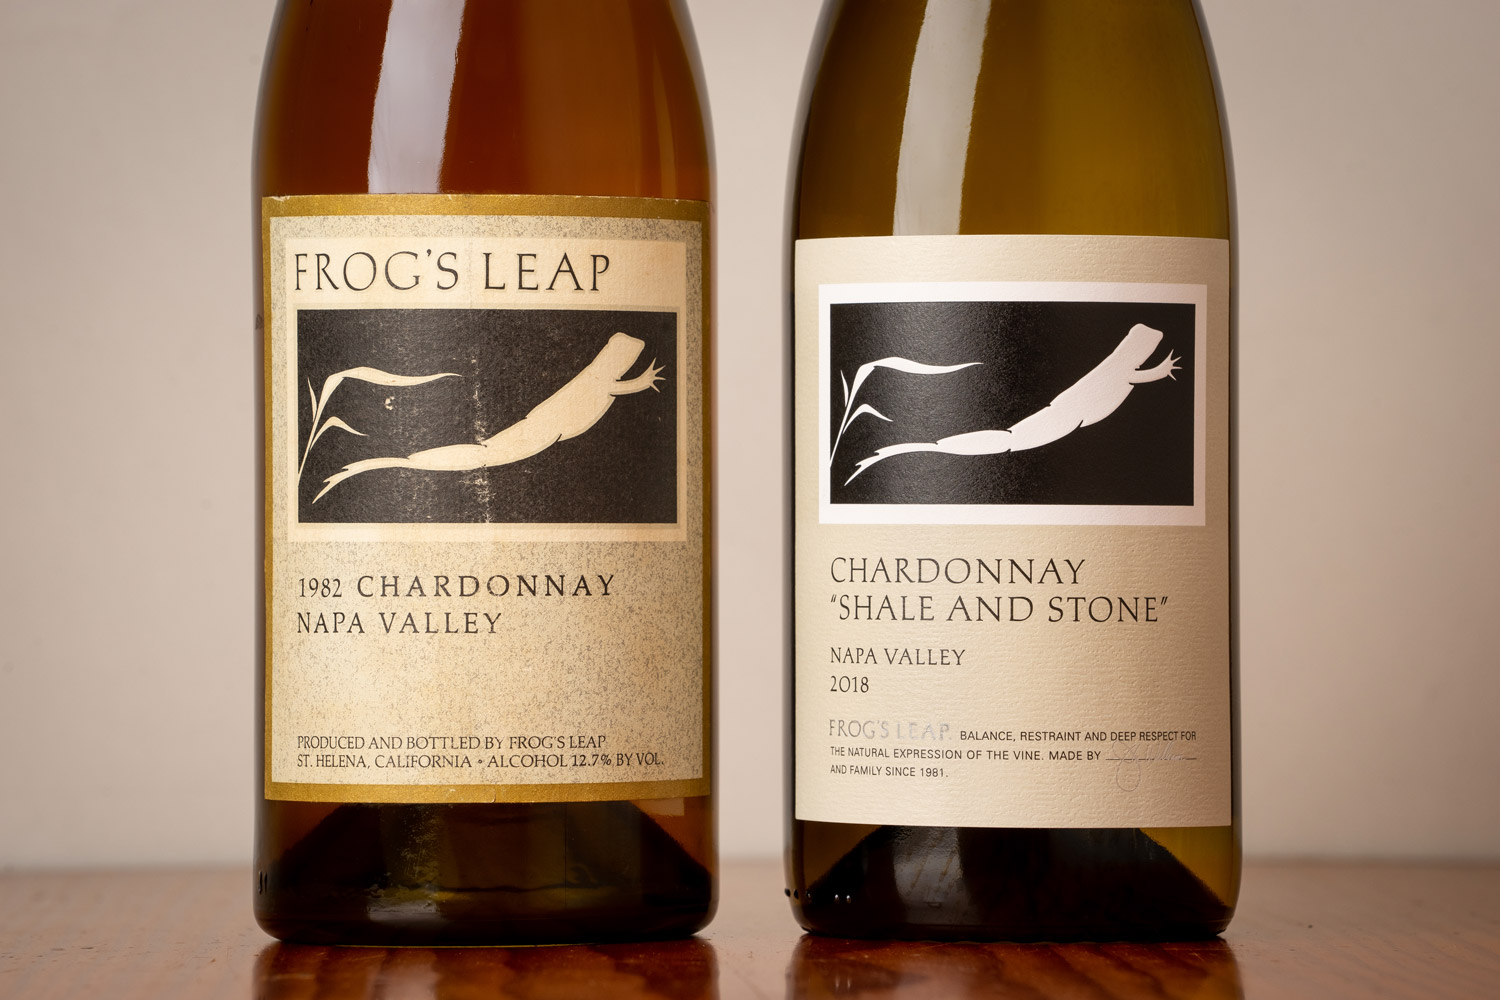 Frog's Leap Chardonnay before and after